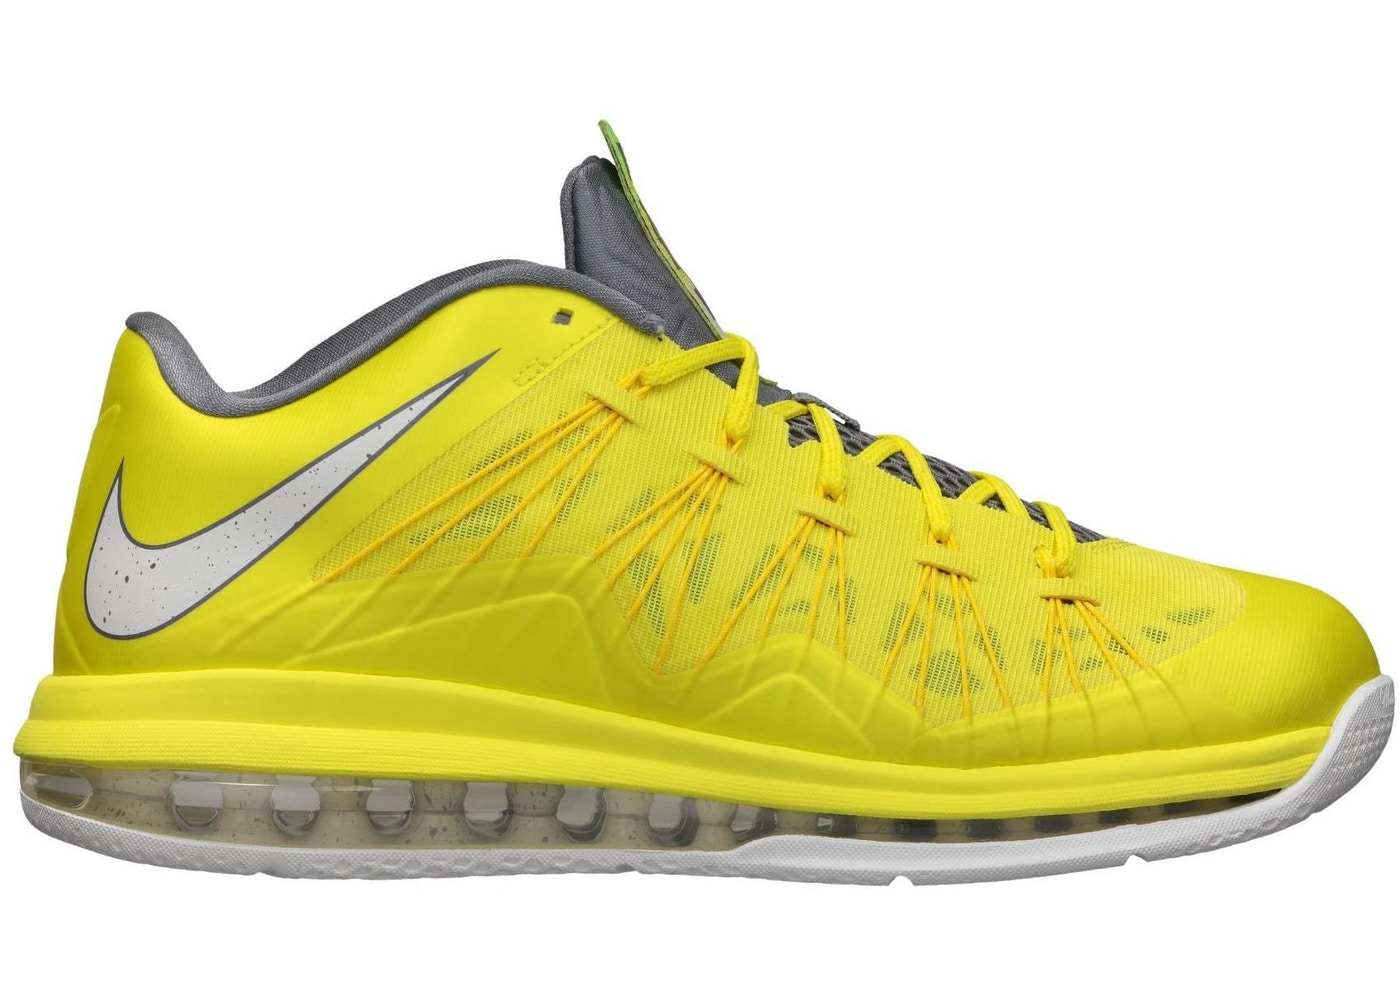 hot sale online fd46a b6383 LeBron X Low Sonic Yellow - 579765-700